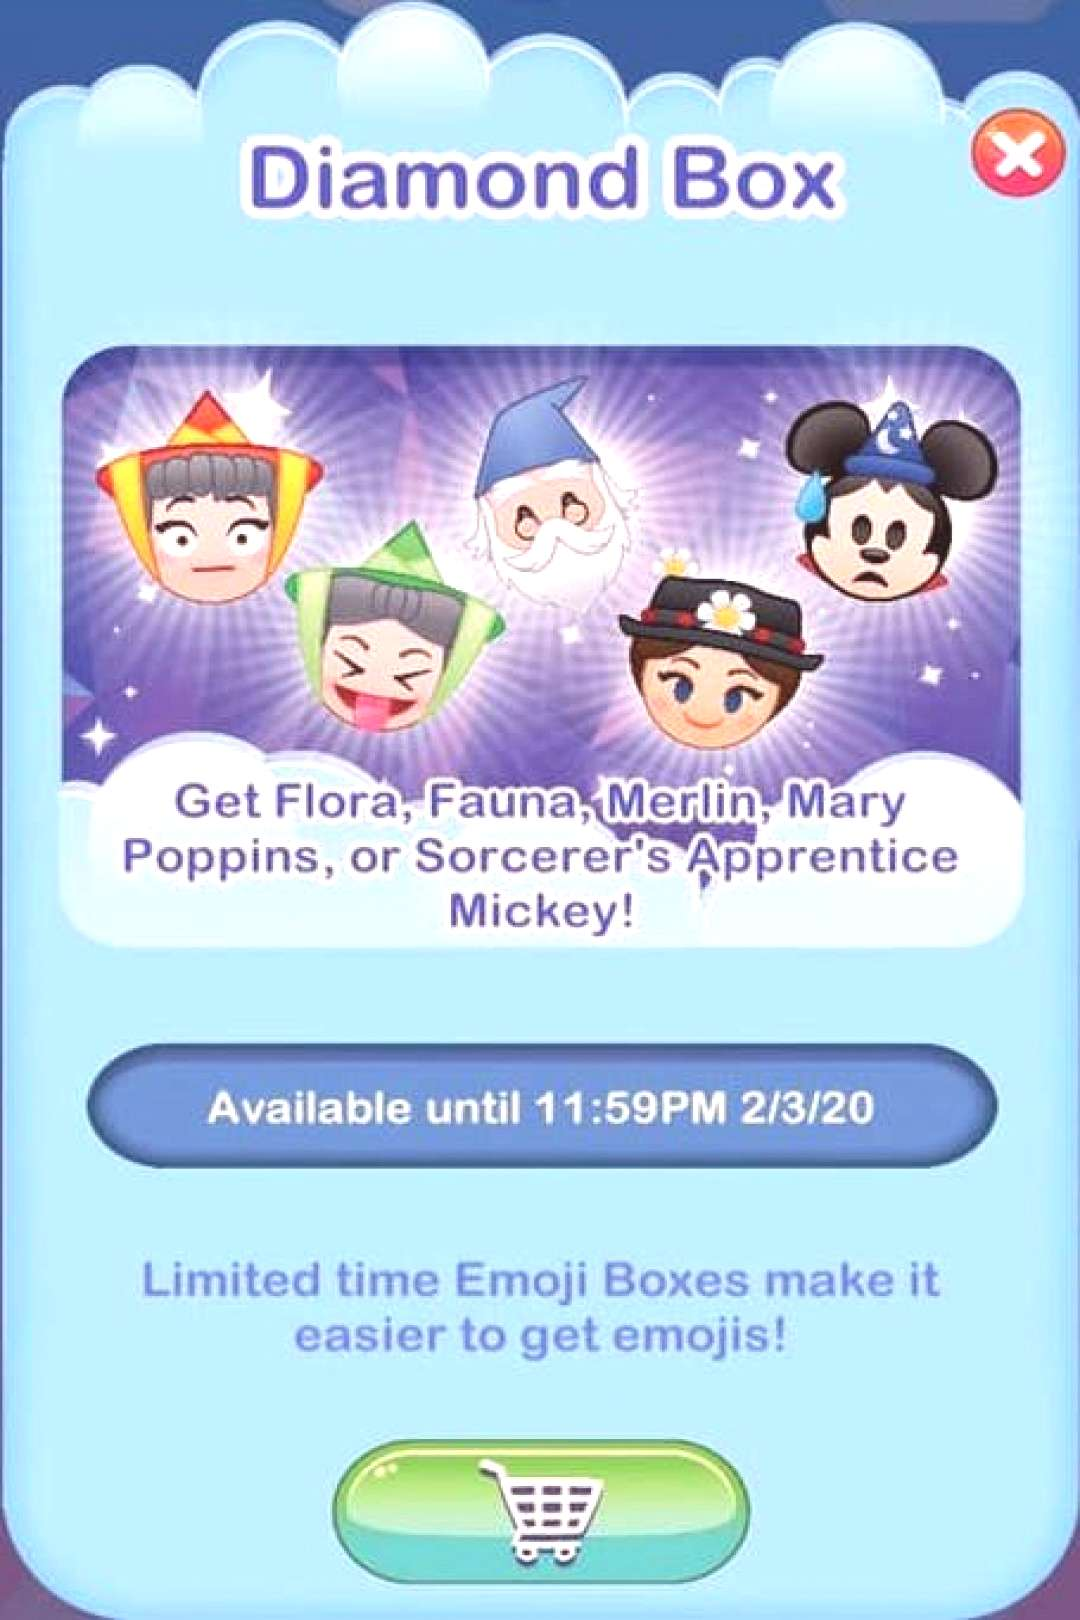 Diamond Box [feat. Flora, Fauna, Merlin, Mary Poppins amp Mickey Mouse (as the Apprentice) - all as e